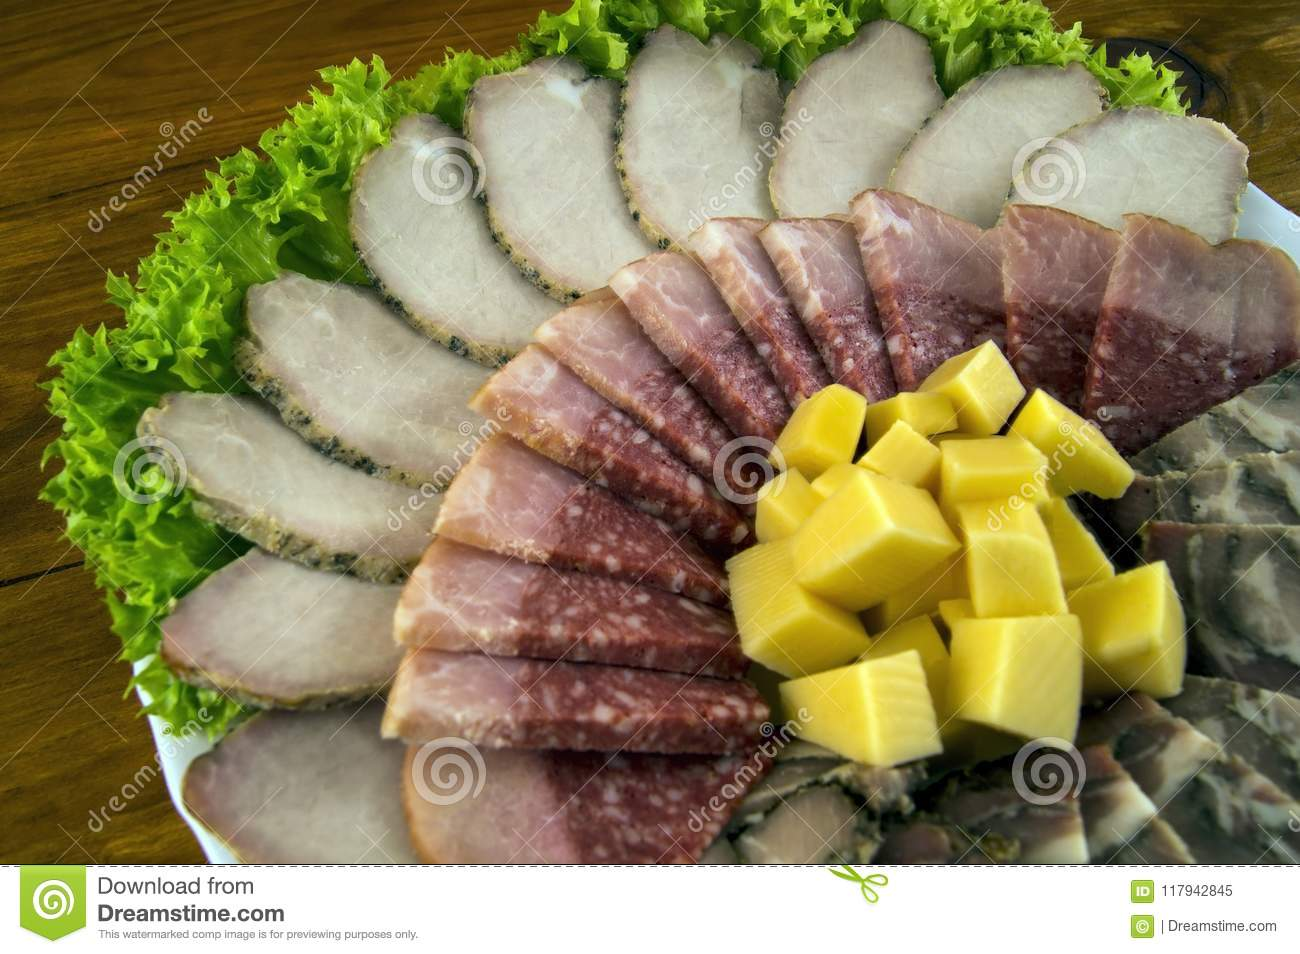 Decoration of sausage, meat, rolls and cheese with lettuce leaves on a white plate